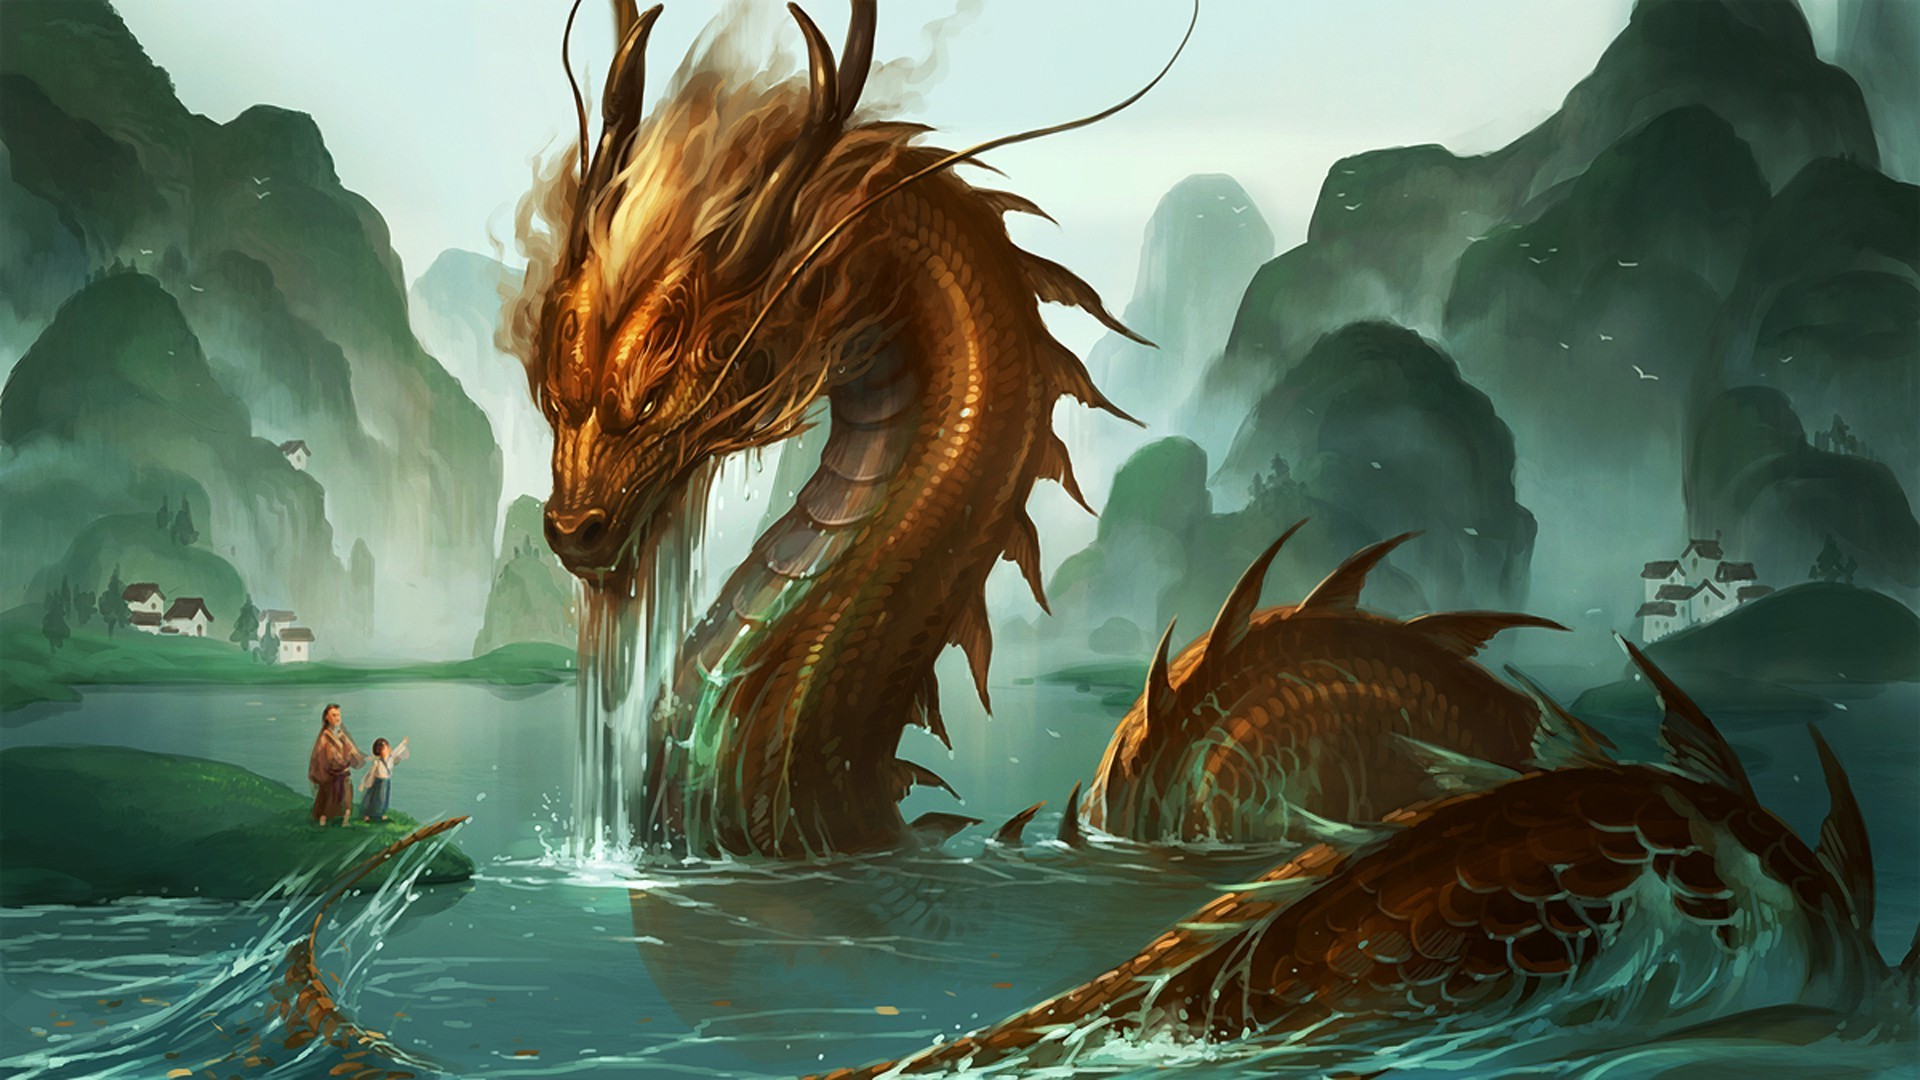 Android World Beautiful Girl Wallpapers The Dragon Rises Out Of The Water Phone Wallpapers